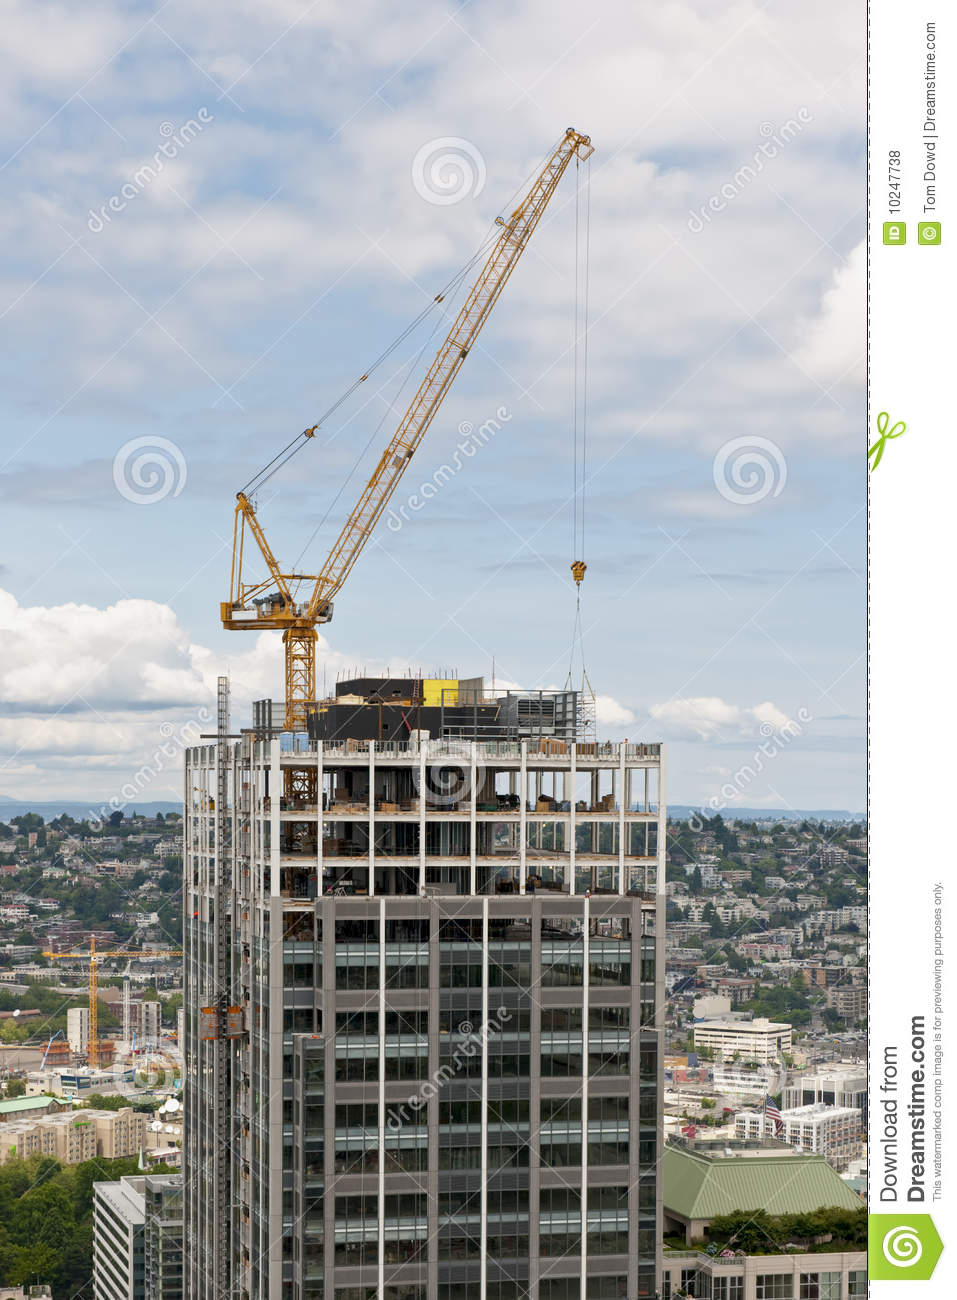 Construction du gratte ciel de grue photos libres de droits image 10247738 - Construction gratte ciel ...